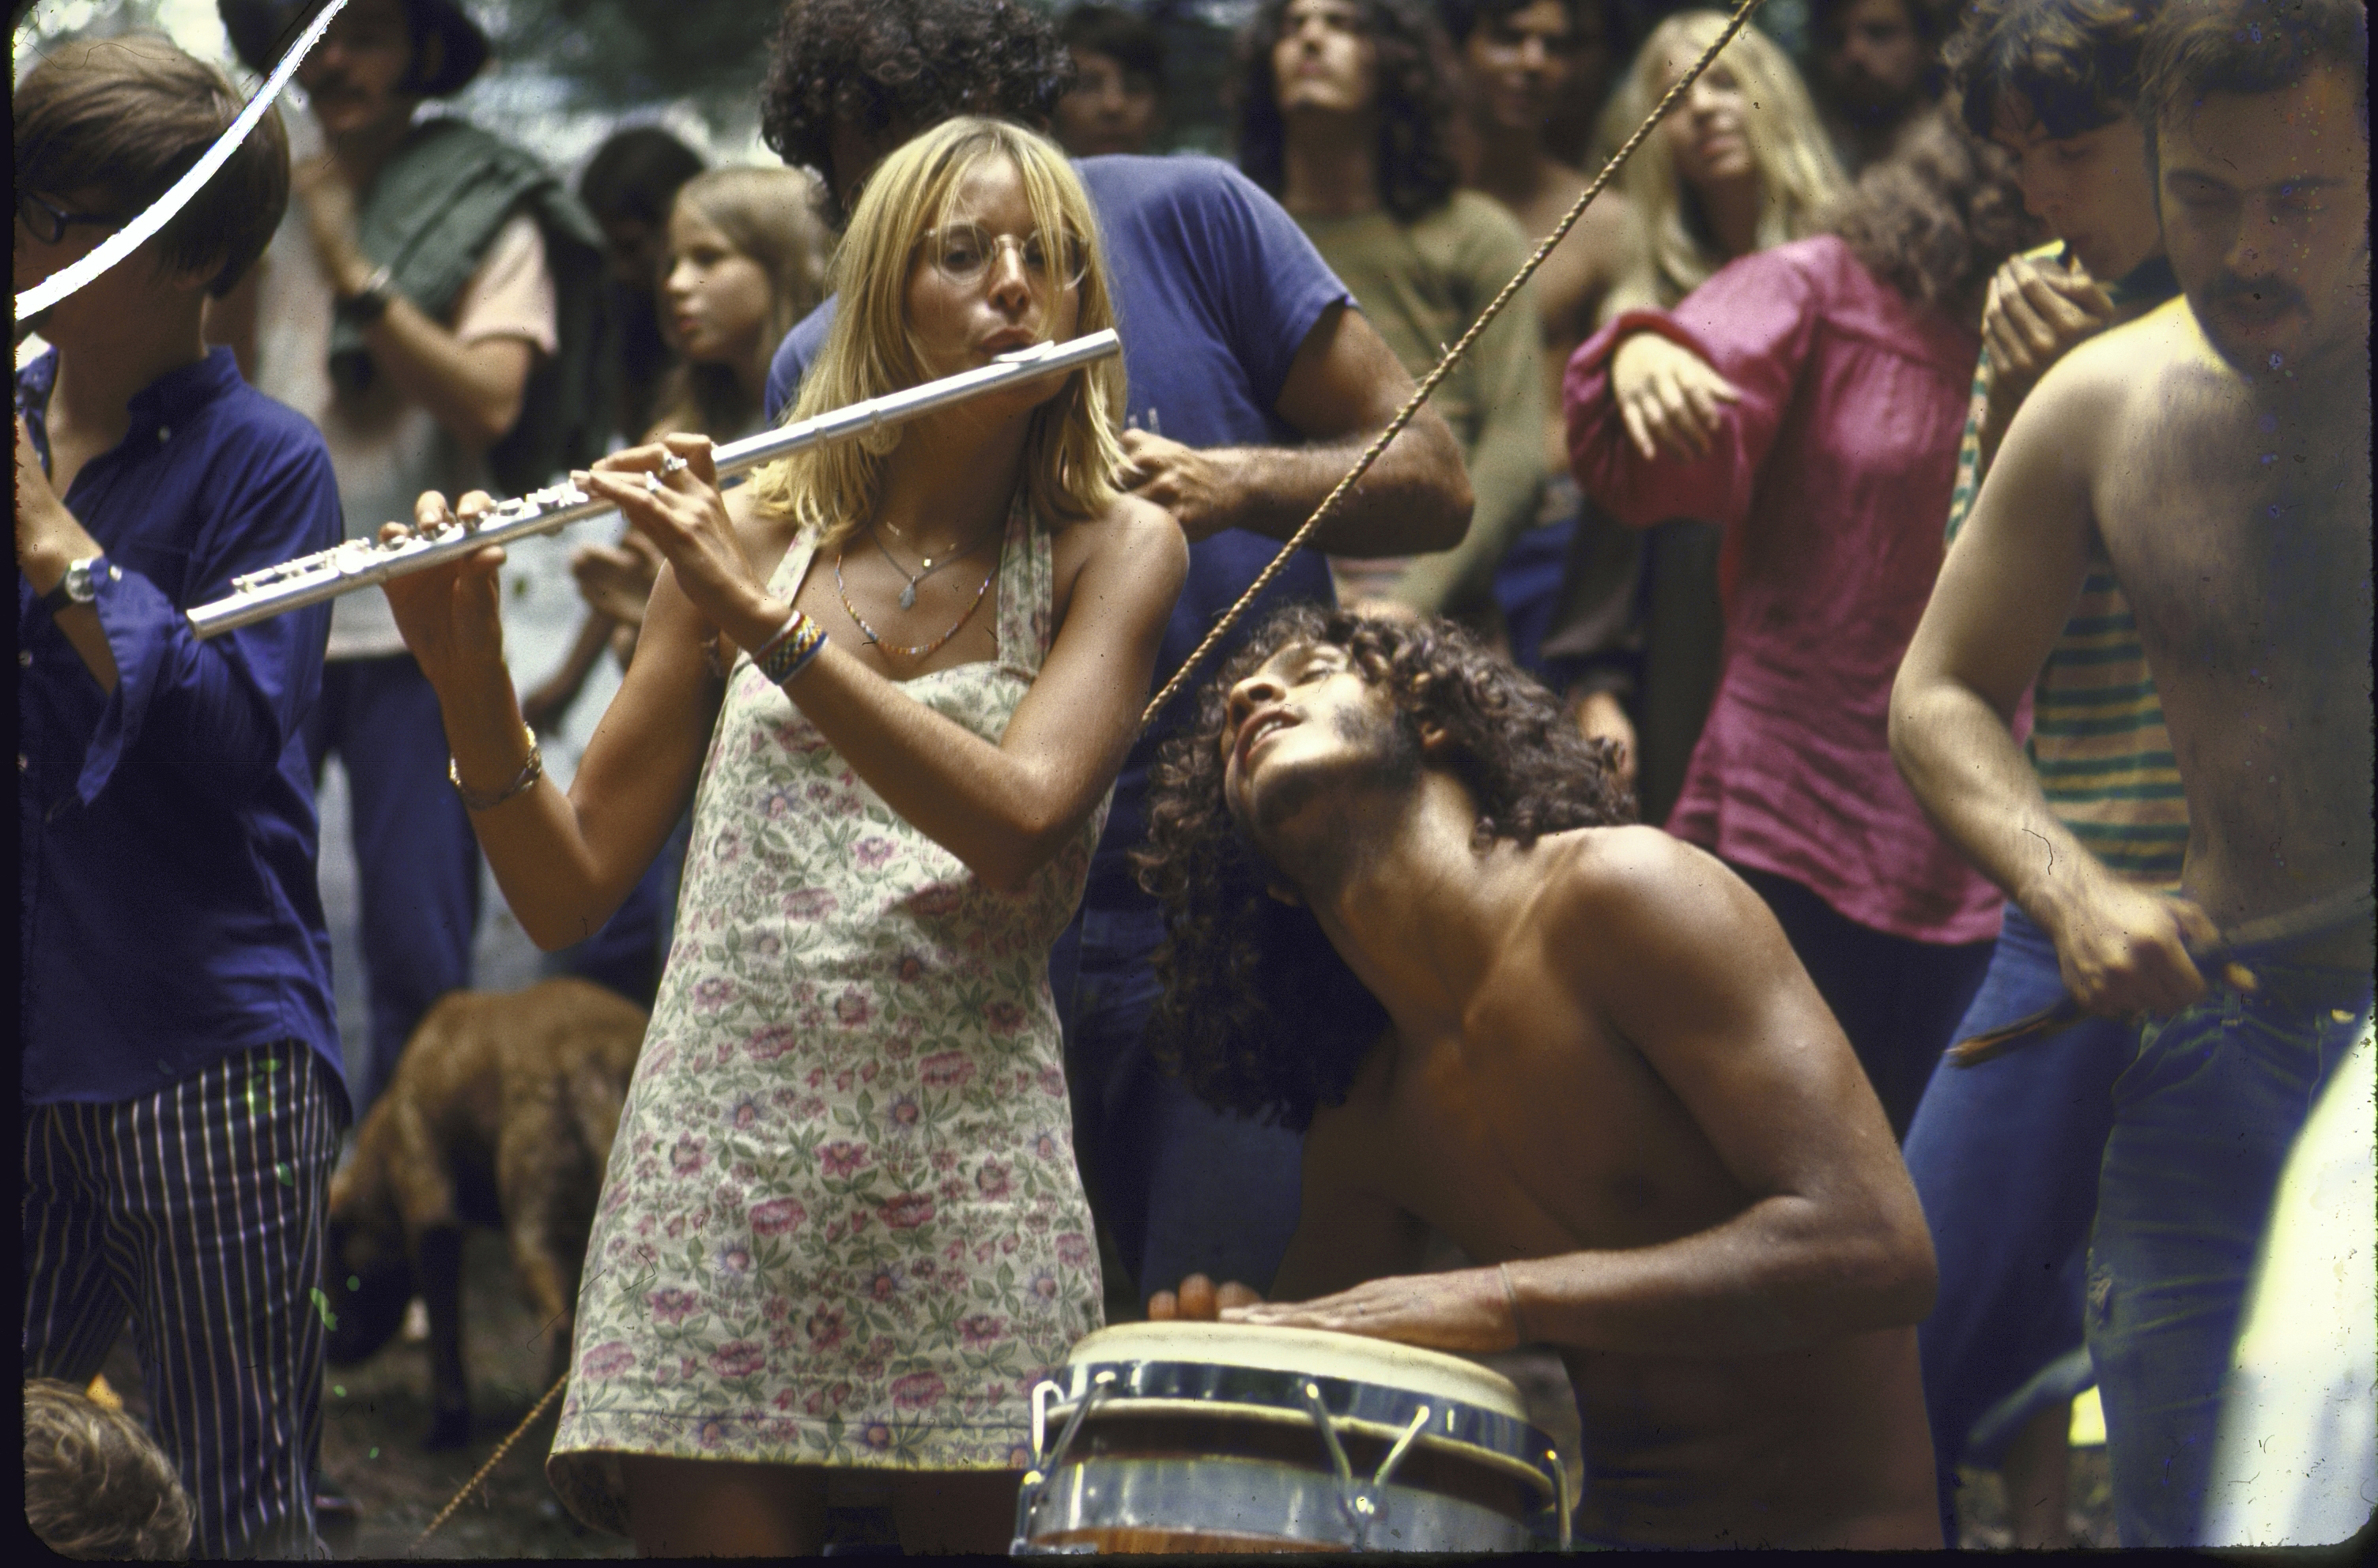 A Radio Station Is Streaming Woodstock '69 in Full This Weekend - VICE